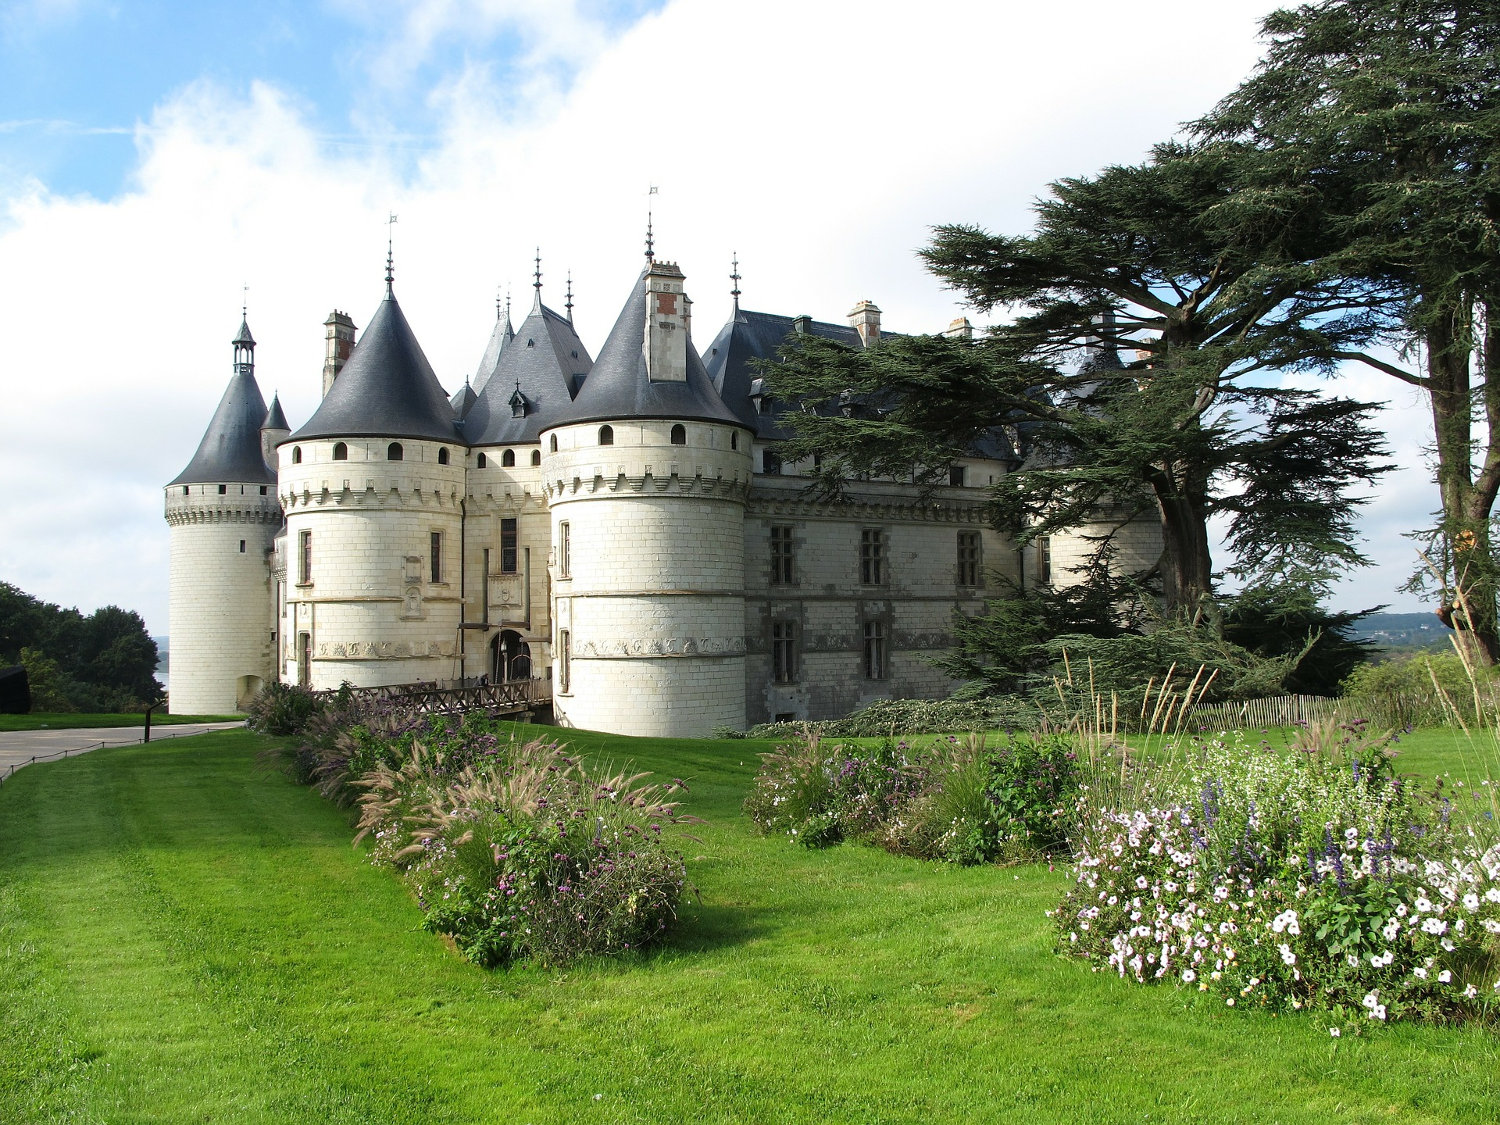 A photo of the Domain de Chaumont in France (by the Loire river)